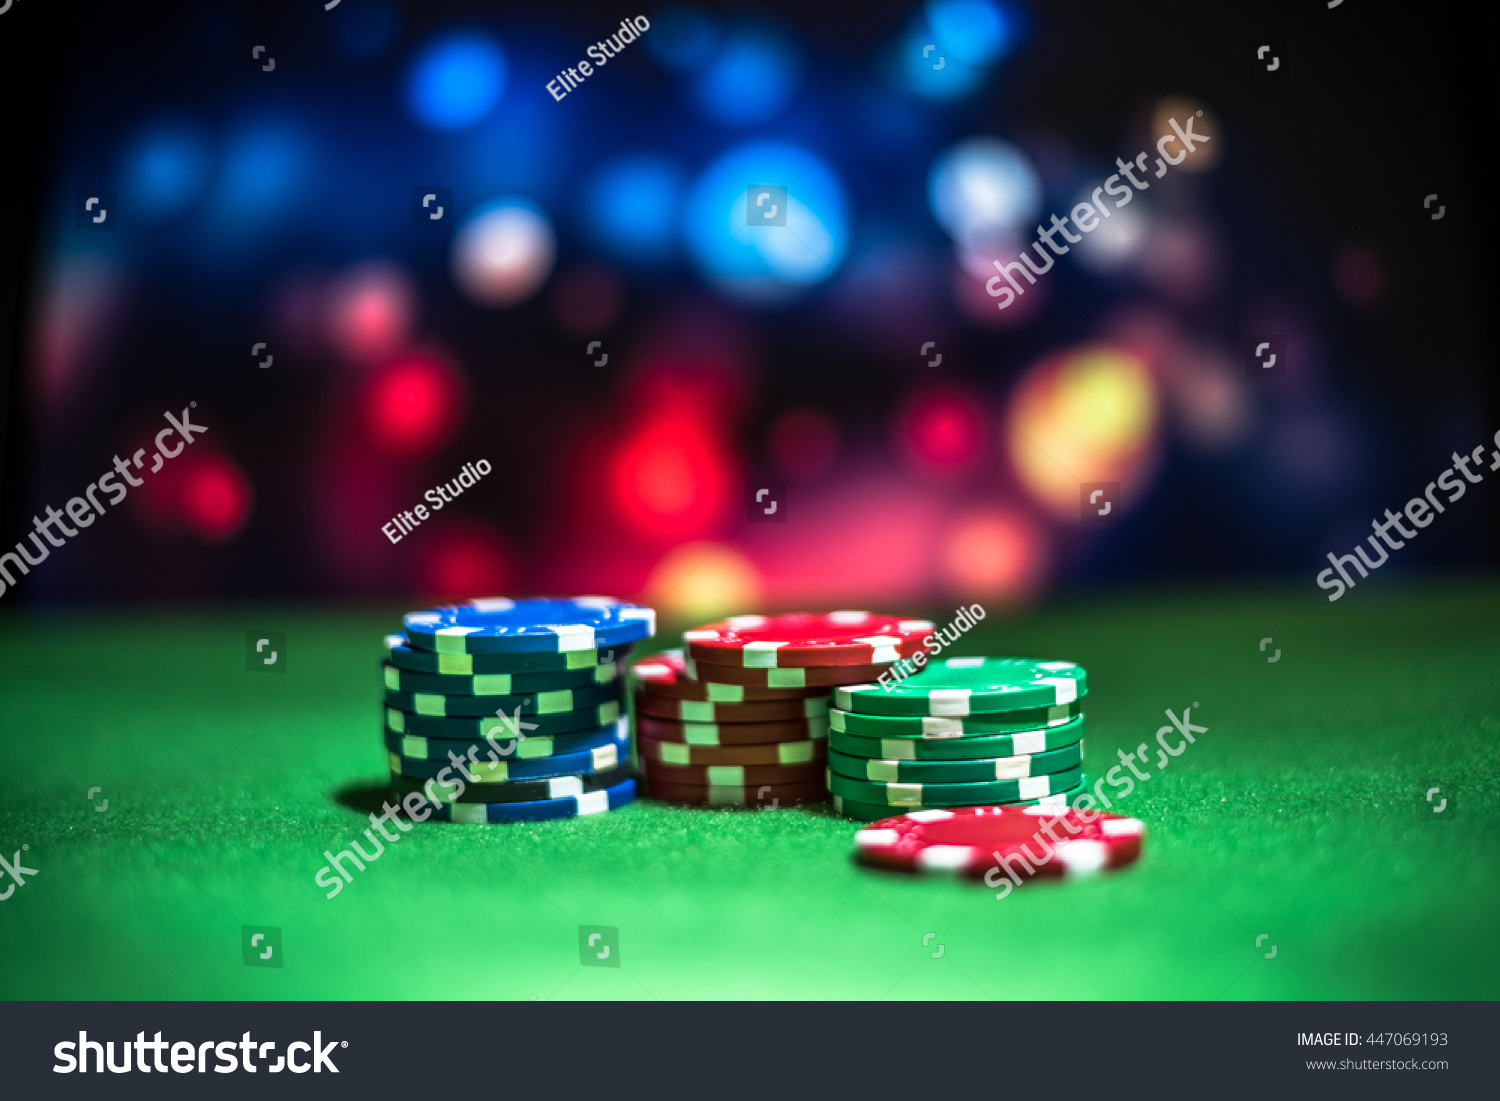 Poker table background - Blur Background And Chips Stack Of Poker Chips On A Green Table Poker Game